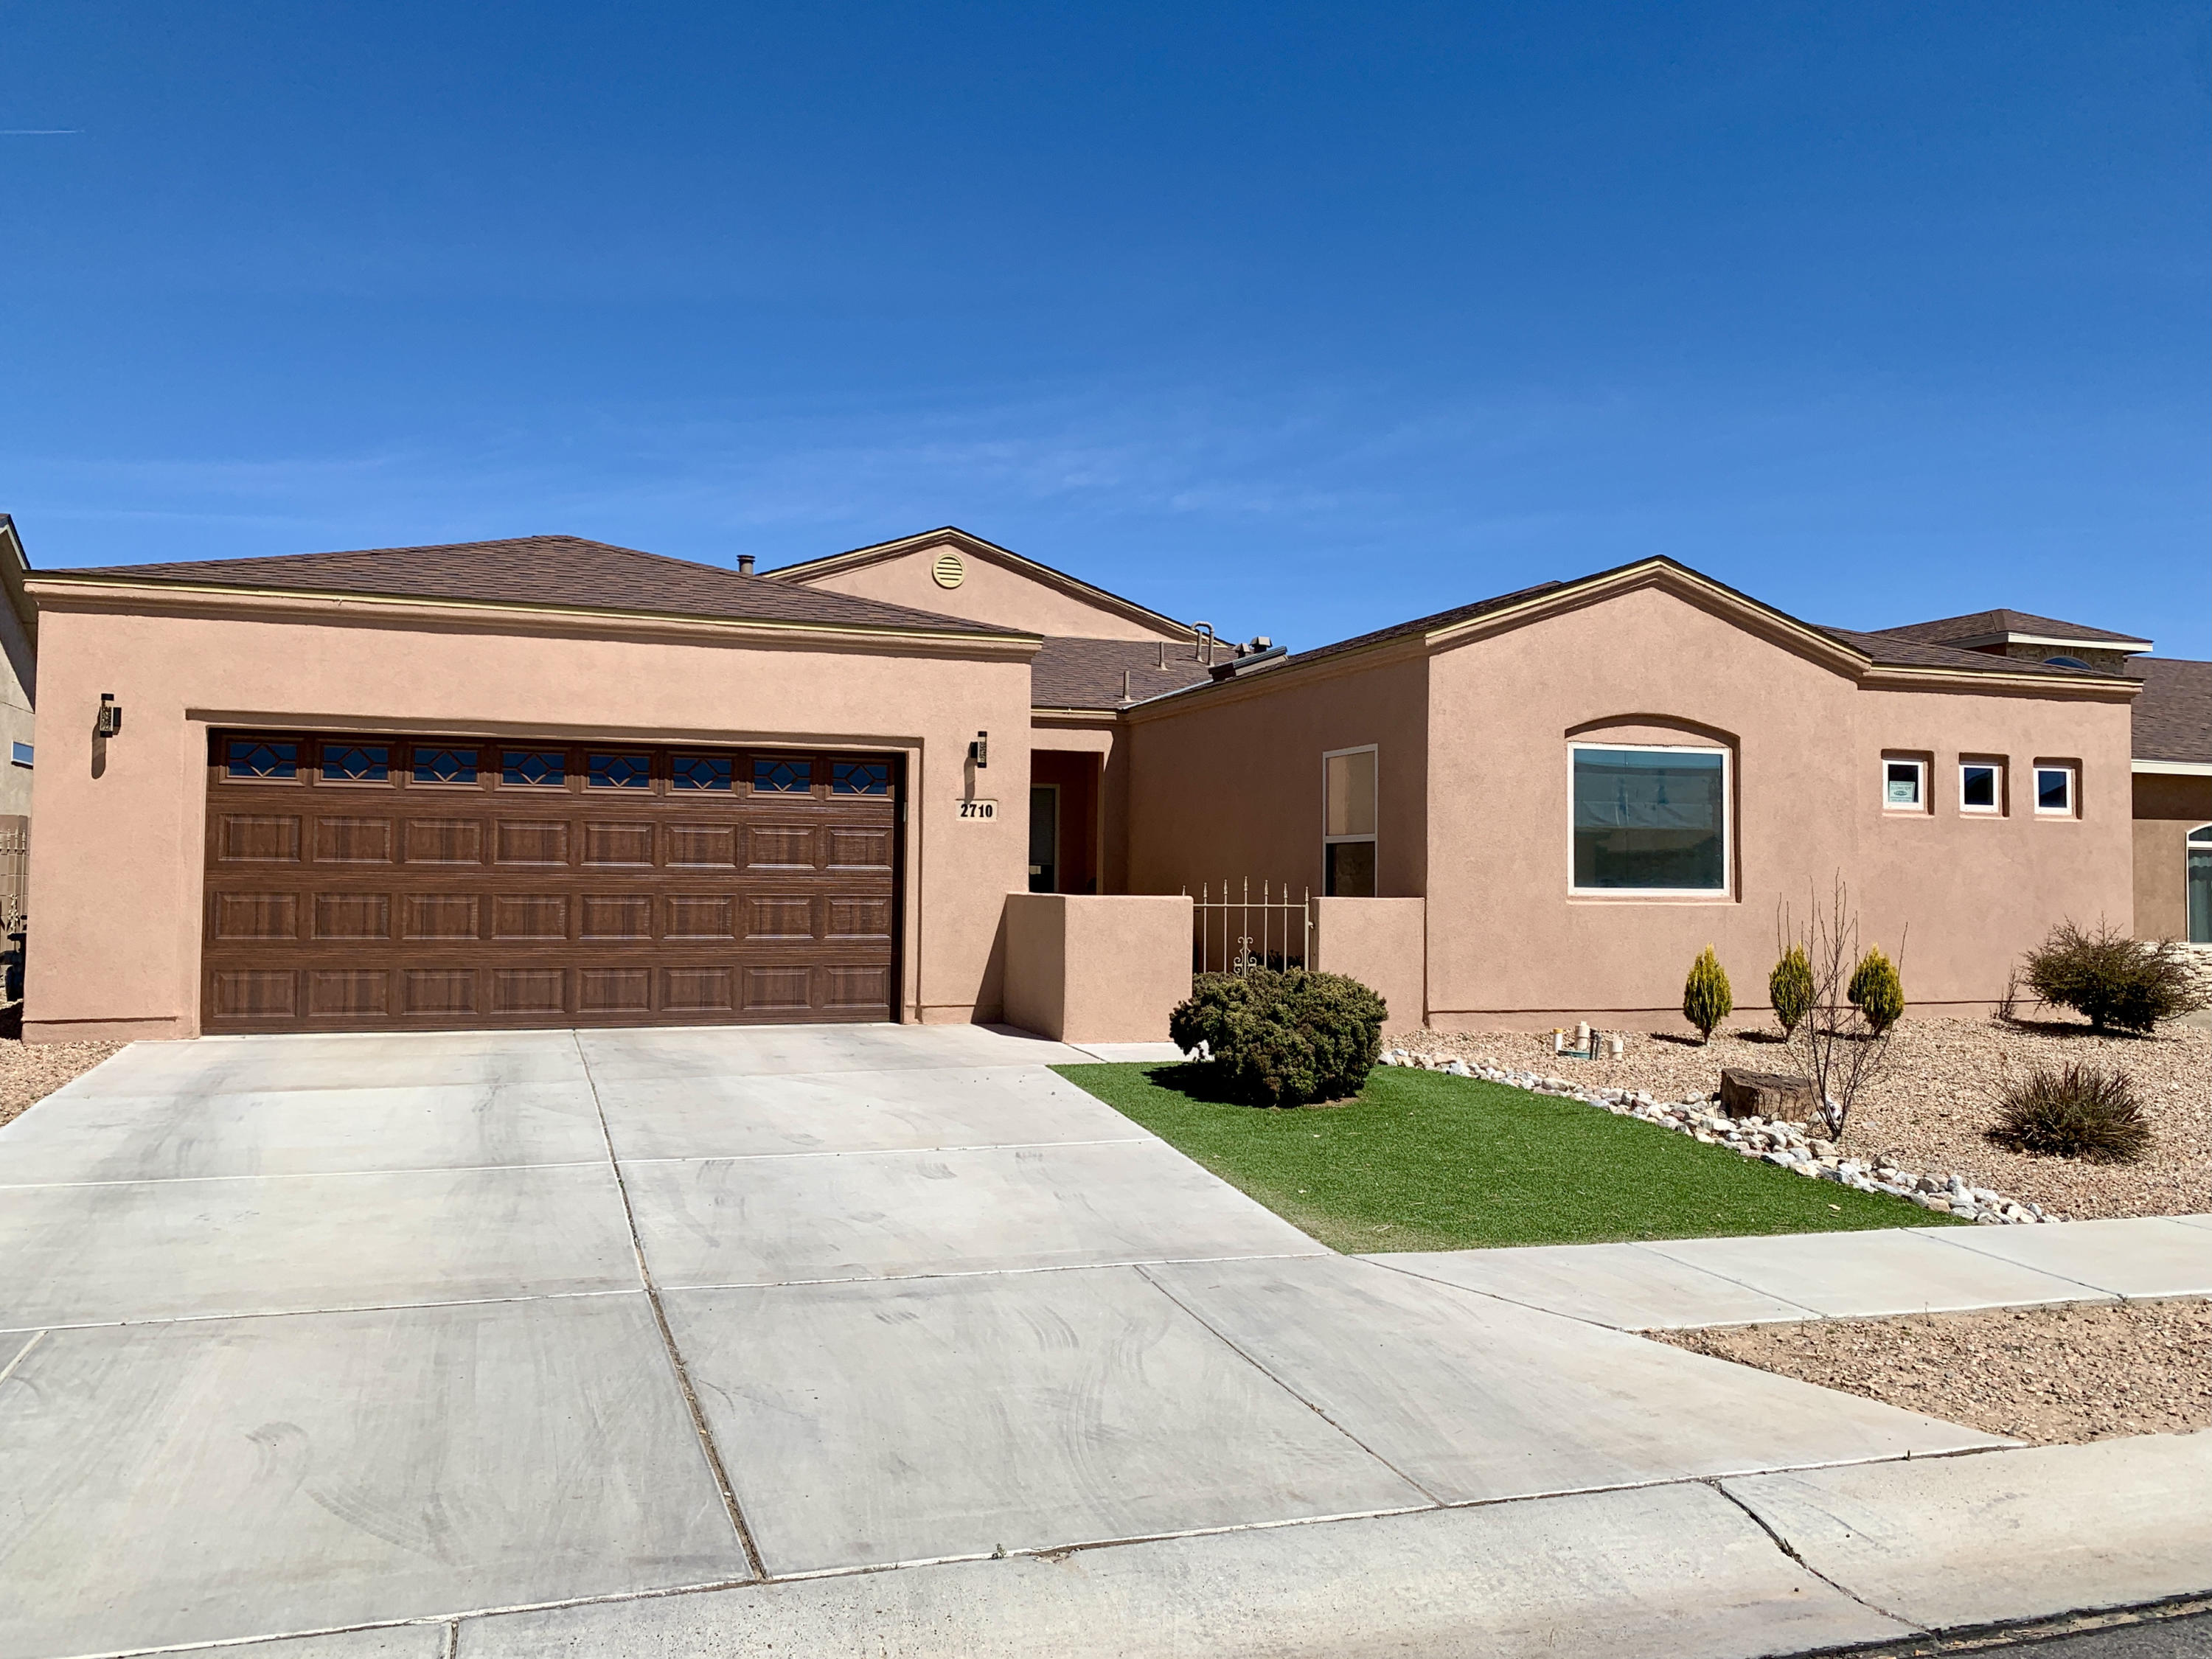 Open house canceled for 5/8!Gorgeous home located in the highly desired gated community in Huning Ranch with a large lot. The owners have kept this home in immaculate, like new, condition. New Dreamstyle stucco job with warranty. The remarkable kitchen offers custom cabinetry, hard surface countertops, a pantry, and large breakfast bar that opens up to the oversized living area and breakfast nook, making it a great home for entertaining.  The large living area won't disappoint with the plenty of ambient lighting, skylights, built in's for entertainment system, and surround sound.  The spacious master offers a coved ceiling, a private patio, separate garden tub & shower.  To top it off, enjoy the gorgeous NM weather in the backyard with an oversized patio slab.  Schedule your showing today!